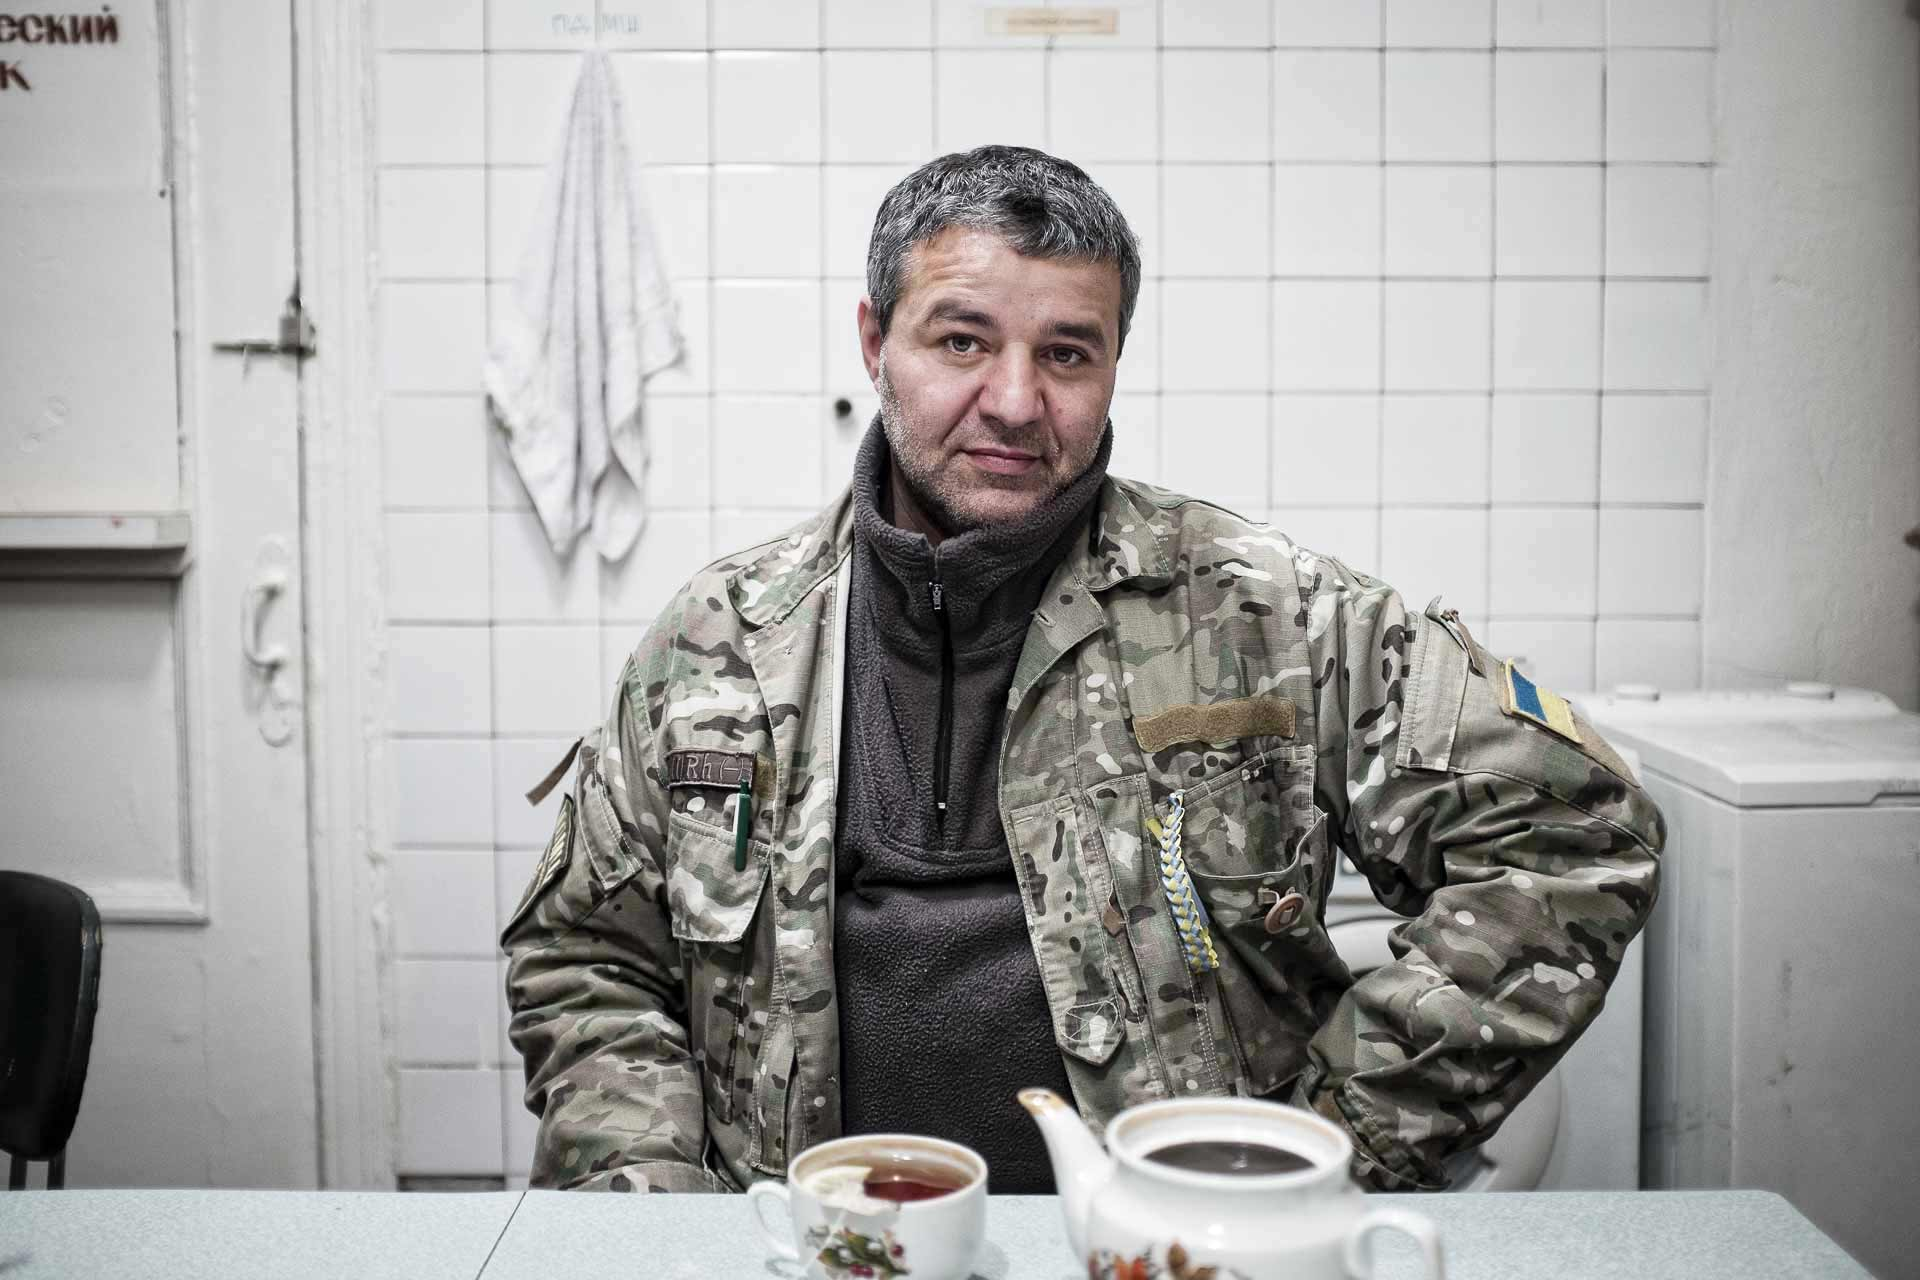 Suren, from Khmelnytsky, volunteers as a ambulance driver at mobile hospital. Plans to stay here till he will be able to parade on Moscow. Bakhmout - UKRAINE